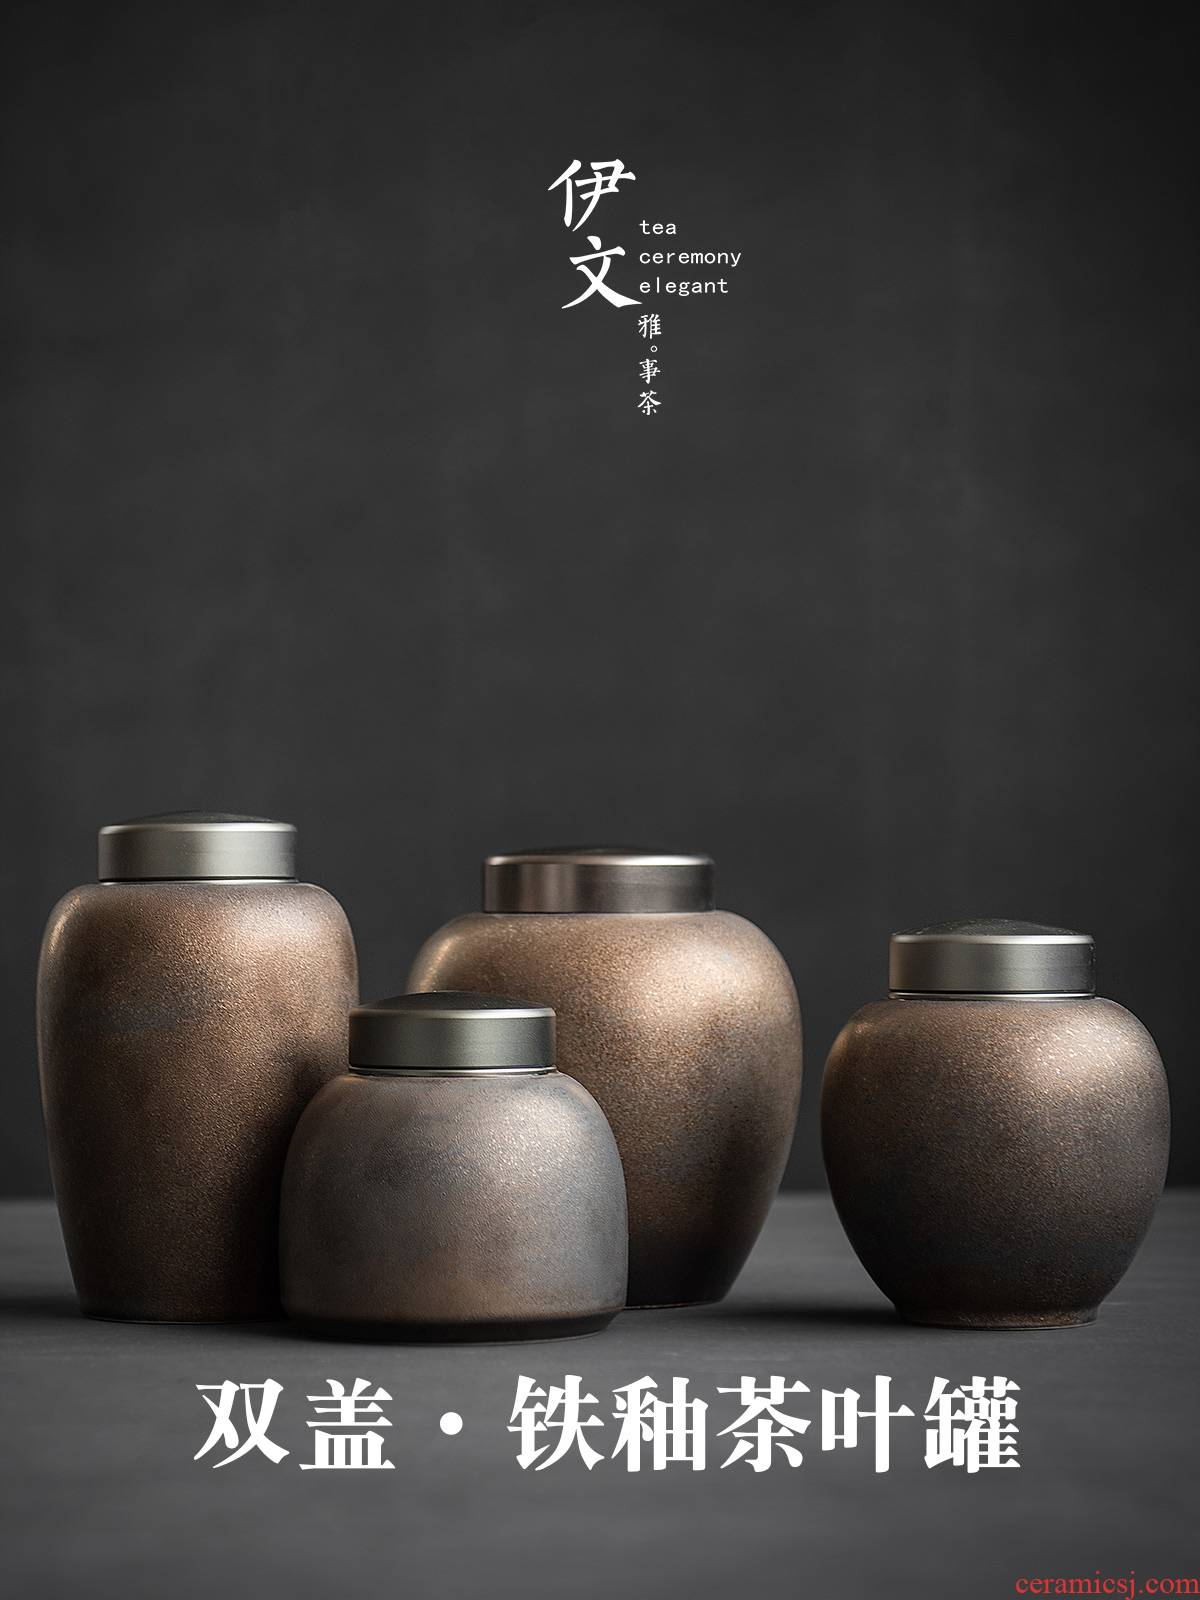 Evan ceramic seal tea caddy fixings piggy bank household receives double POTS to restore ancient ways to wake large POTS